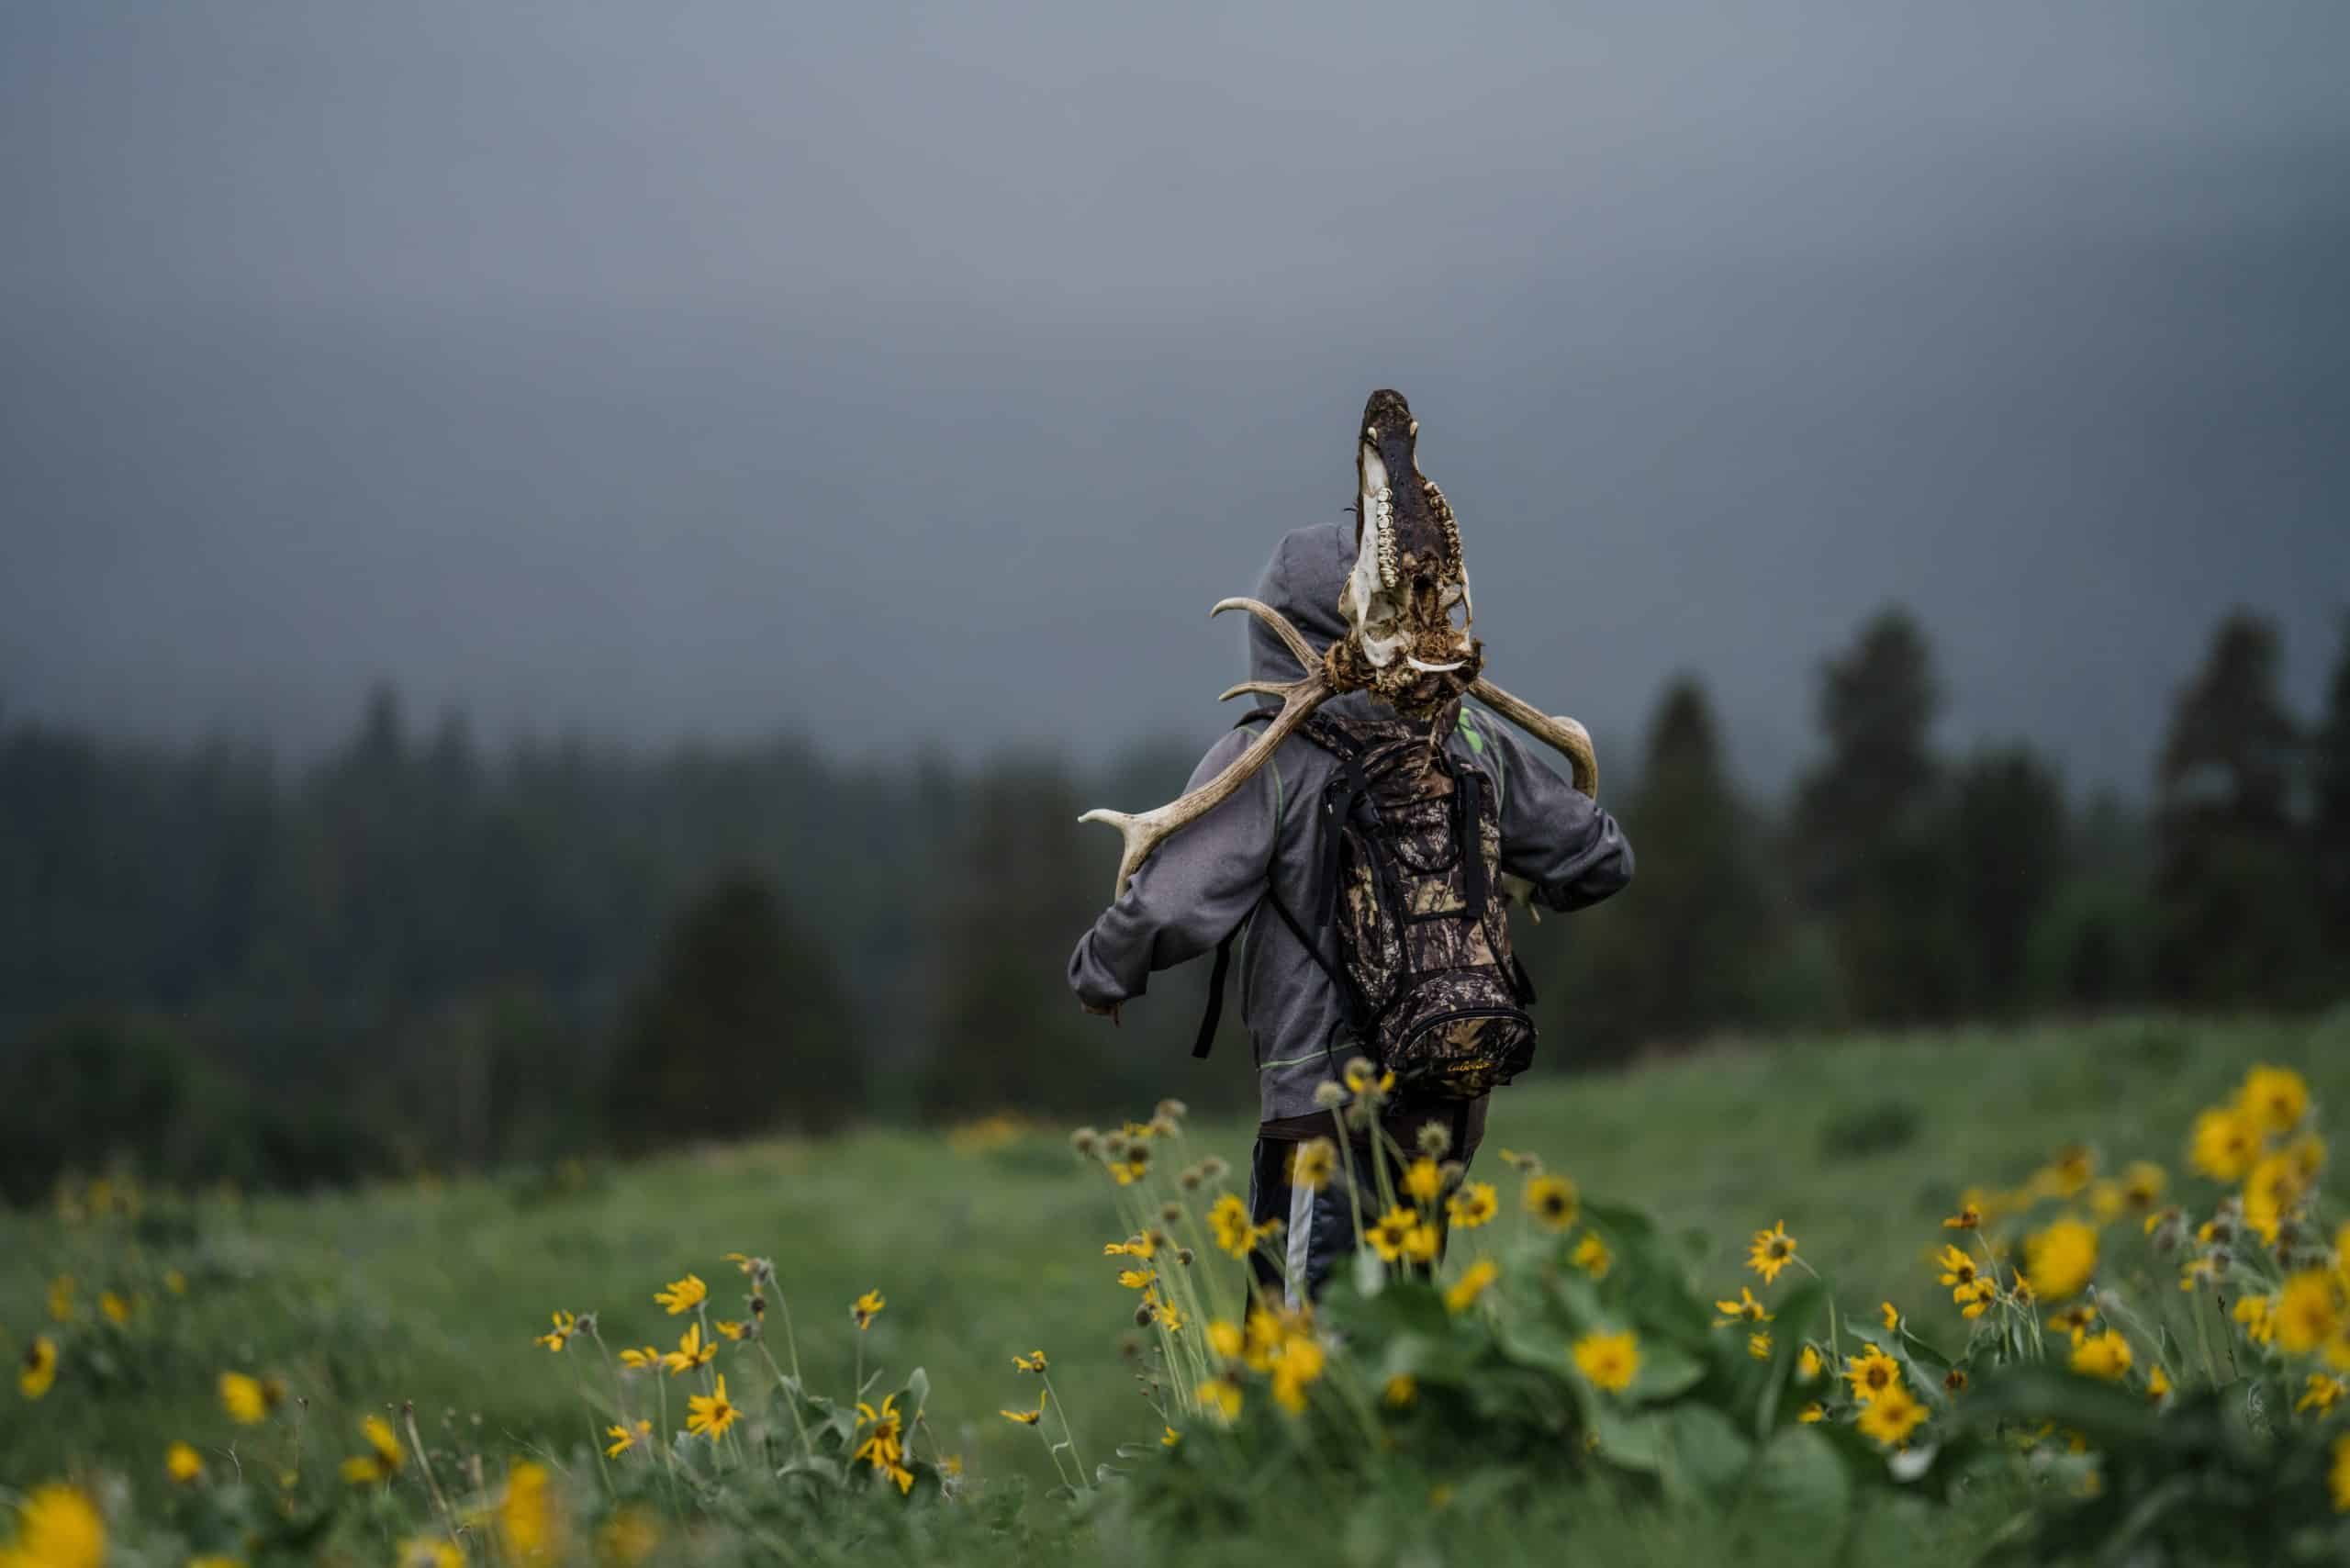 A shed hunter brings home an unlucky elk head that didnt make it through winter.